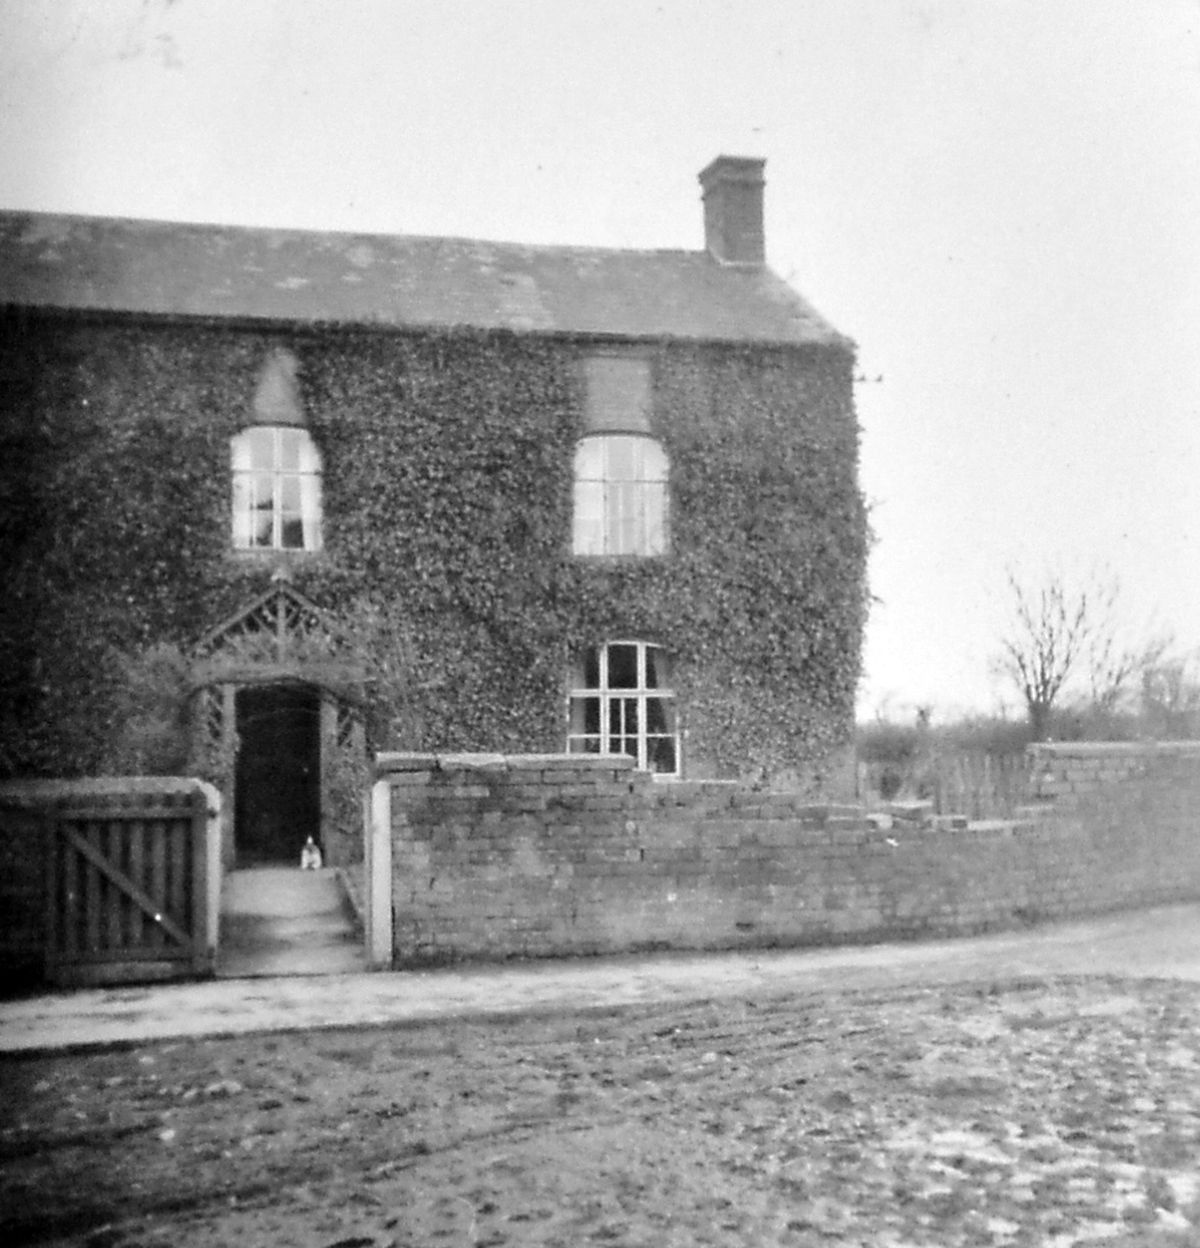 Sales Farm, Somerwood, where Jean was brought up.